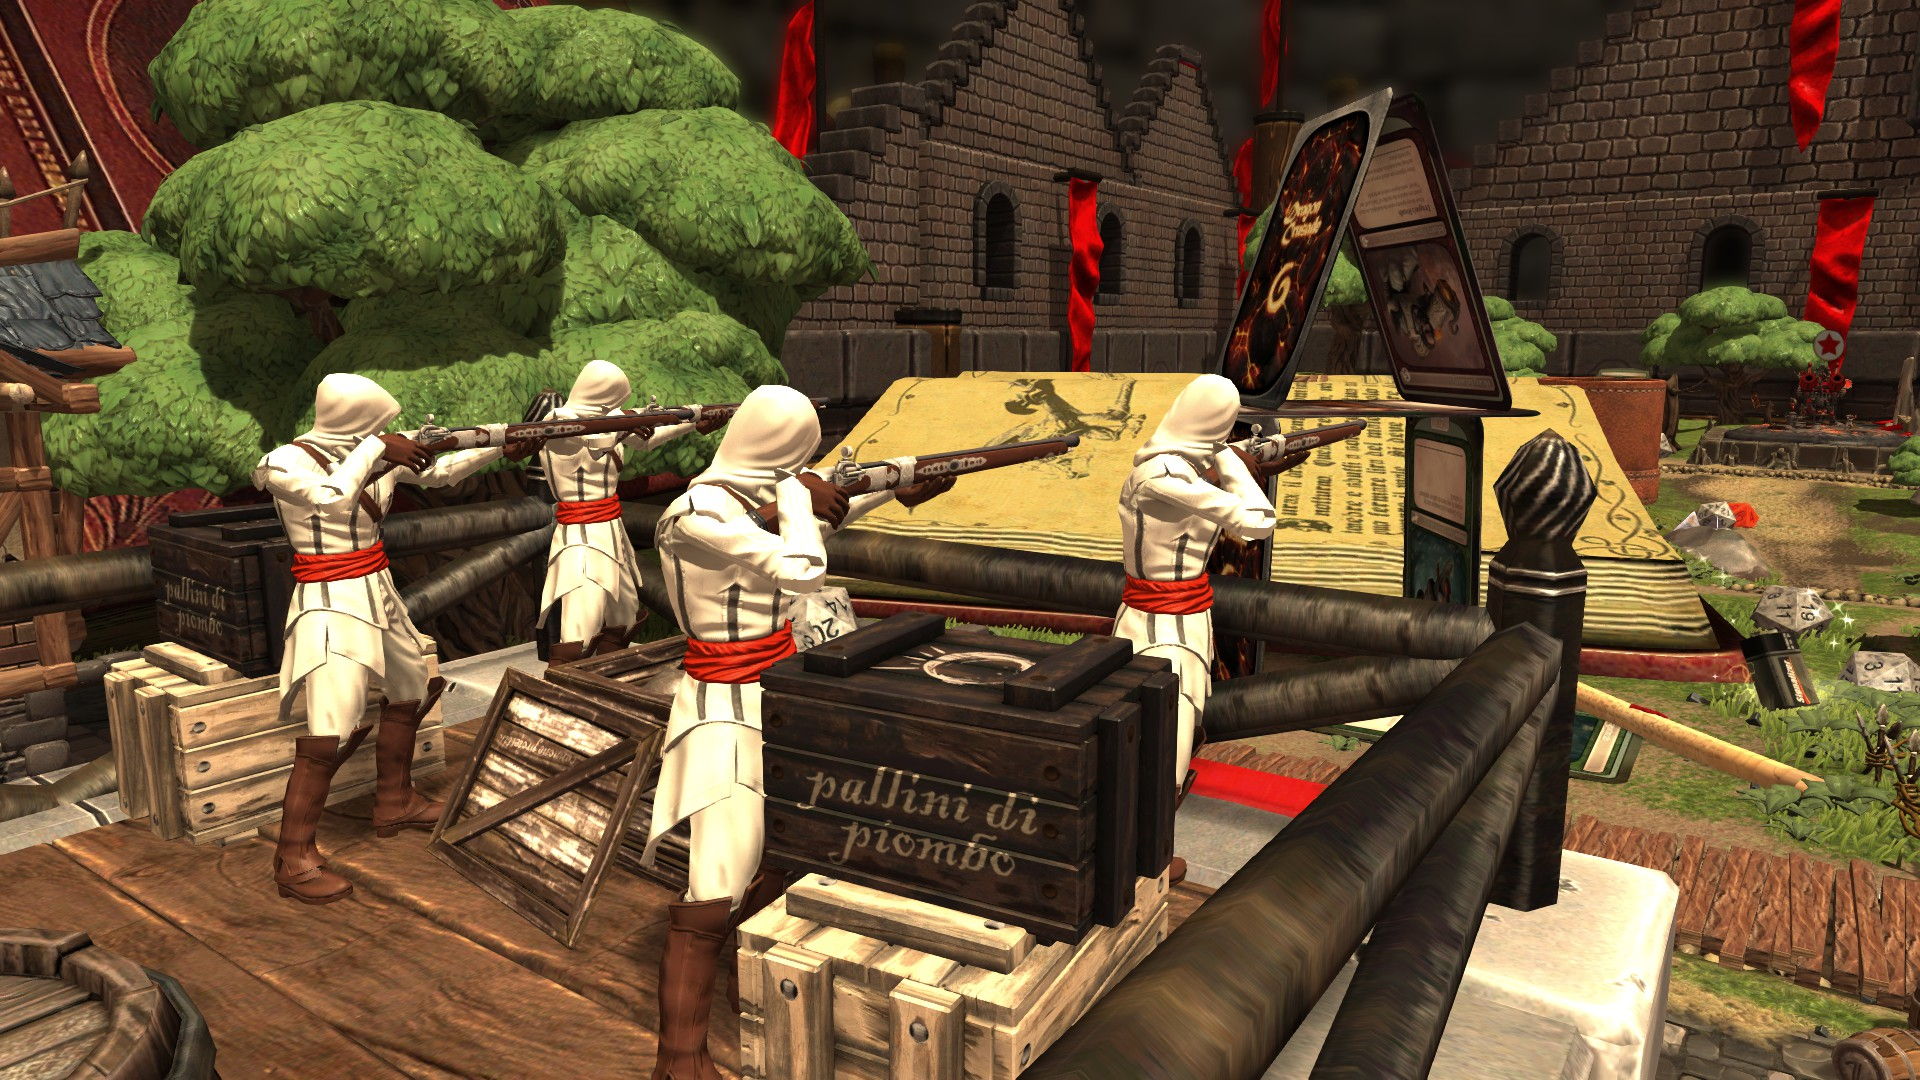 Ezio And The Assassins Brotherhood Team Up In Toy Soldiers War Chest VG247